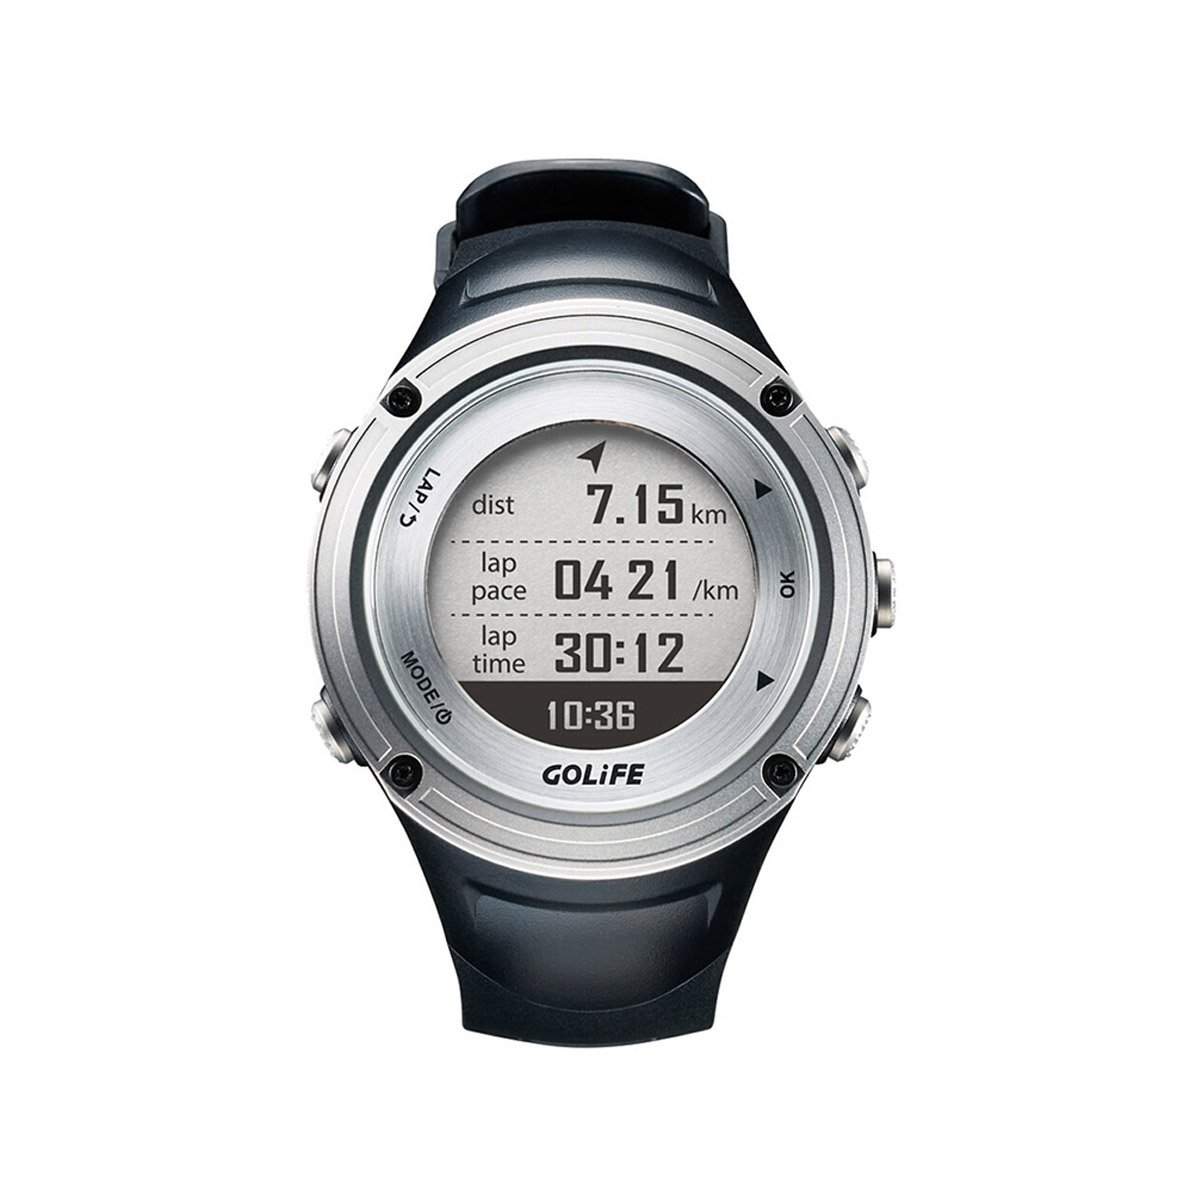 GPS Watch with Barometer GOLiFE X-pro Adventurer Outdoor Running Watch for Men Triathlon Swimming Climbing Hiking Cycling and Running Includes Compass Barometer Thermometer Functions (Silver)